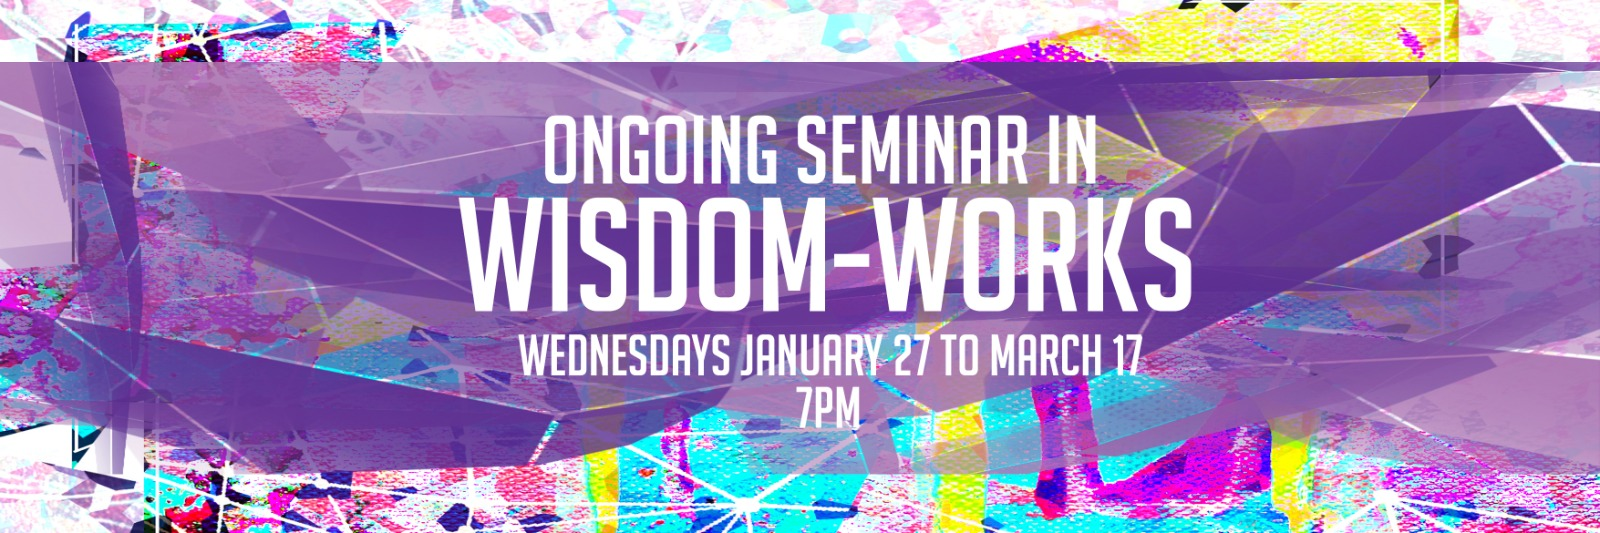 Banner Image for Ongoing Seminar in Wisdom-Works